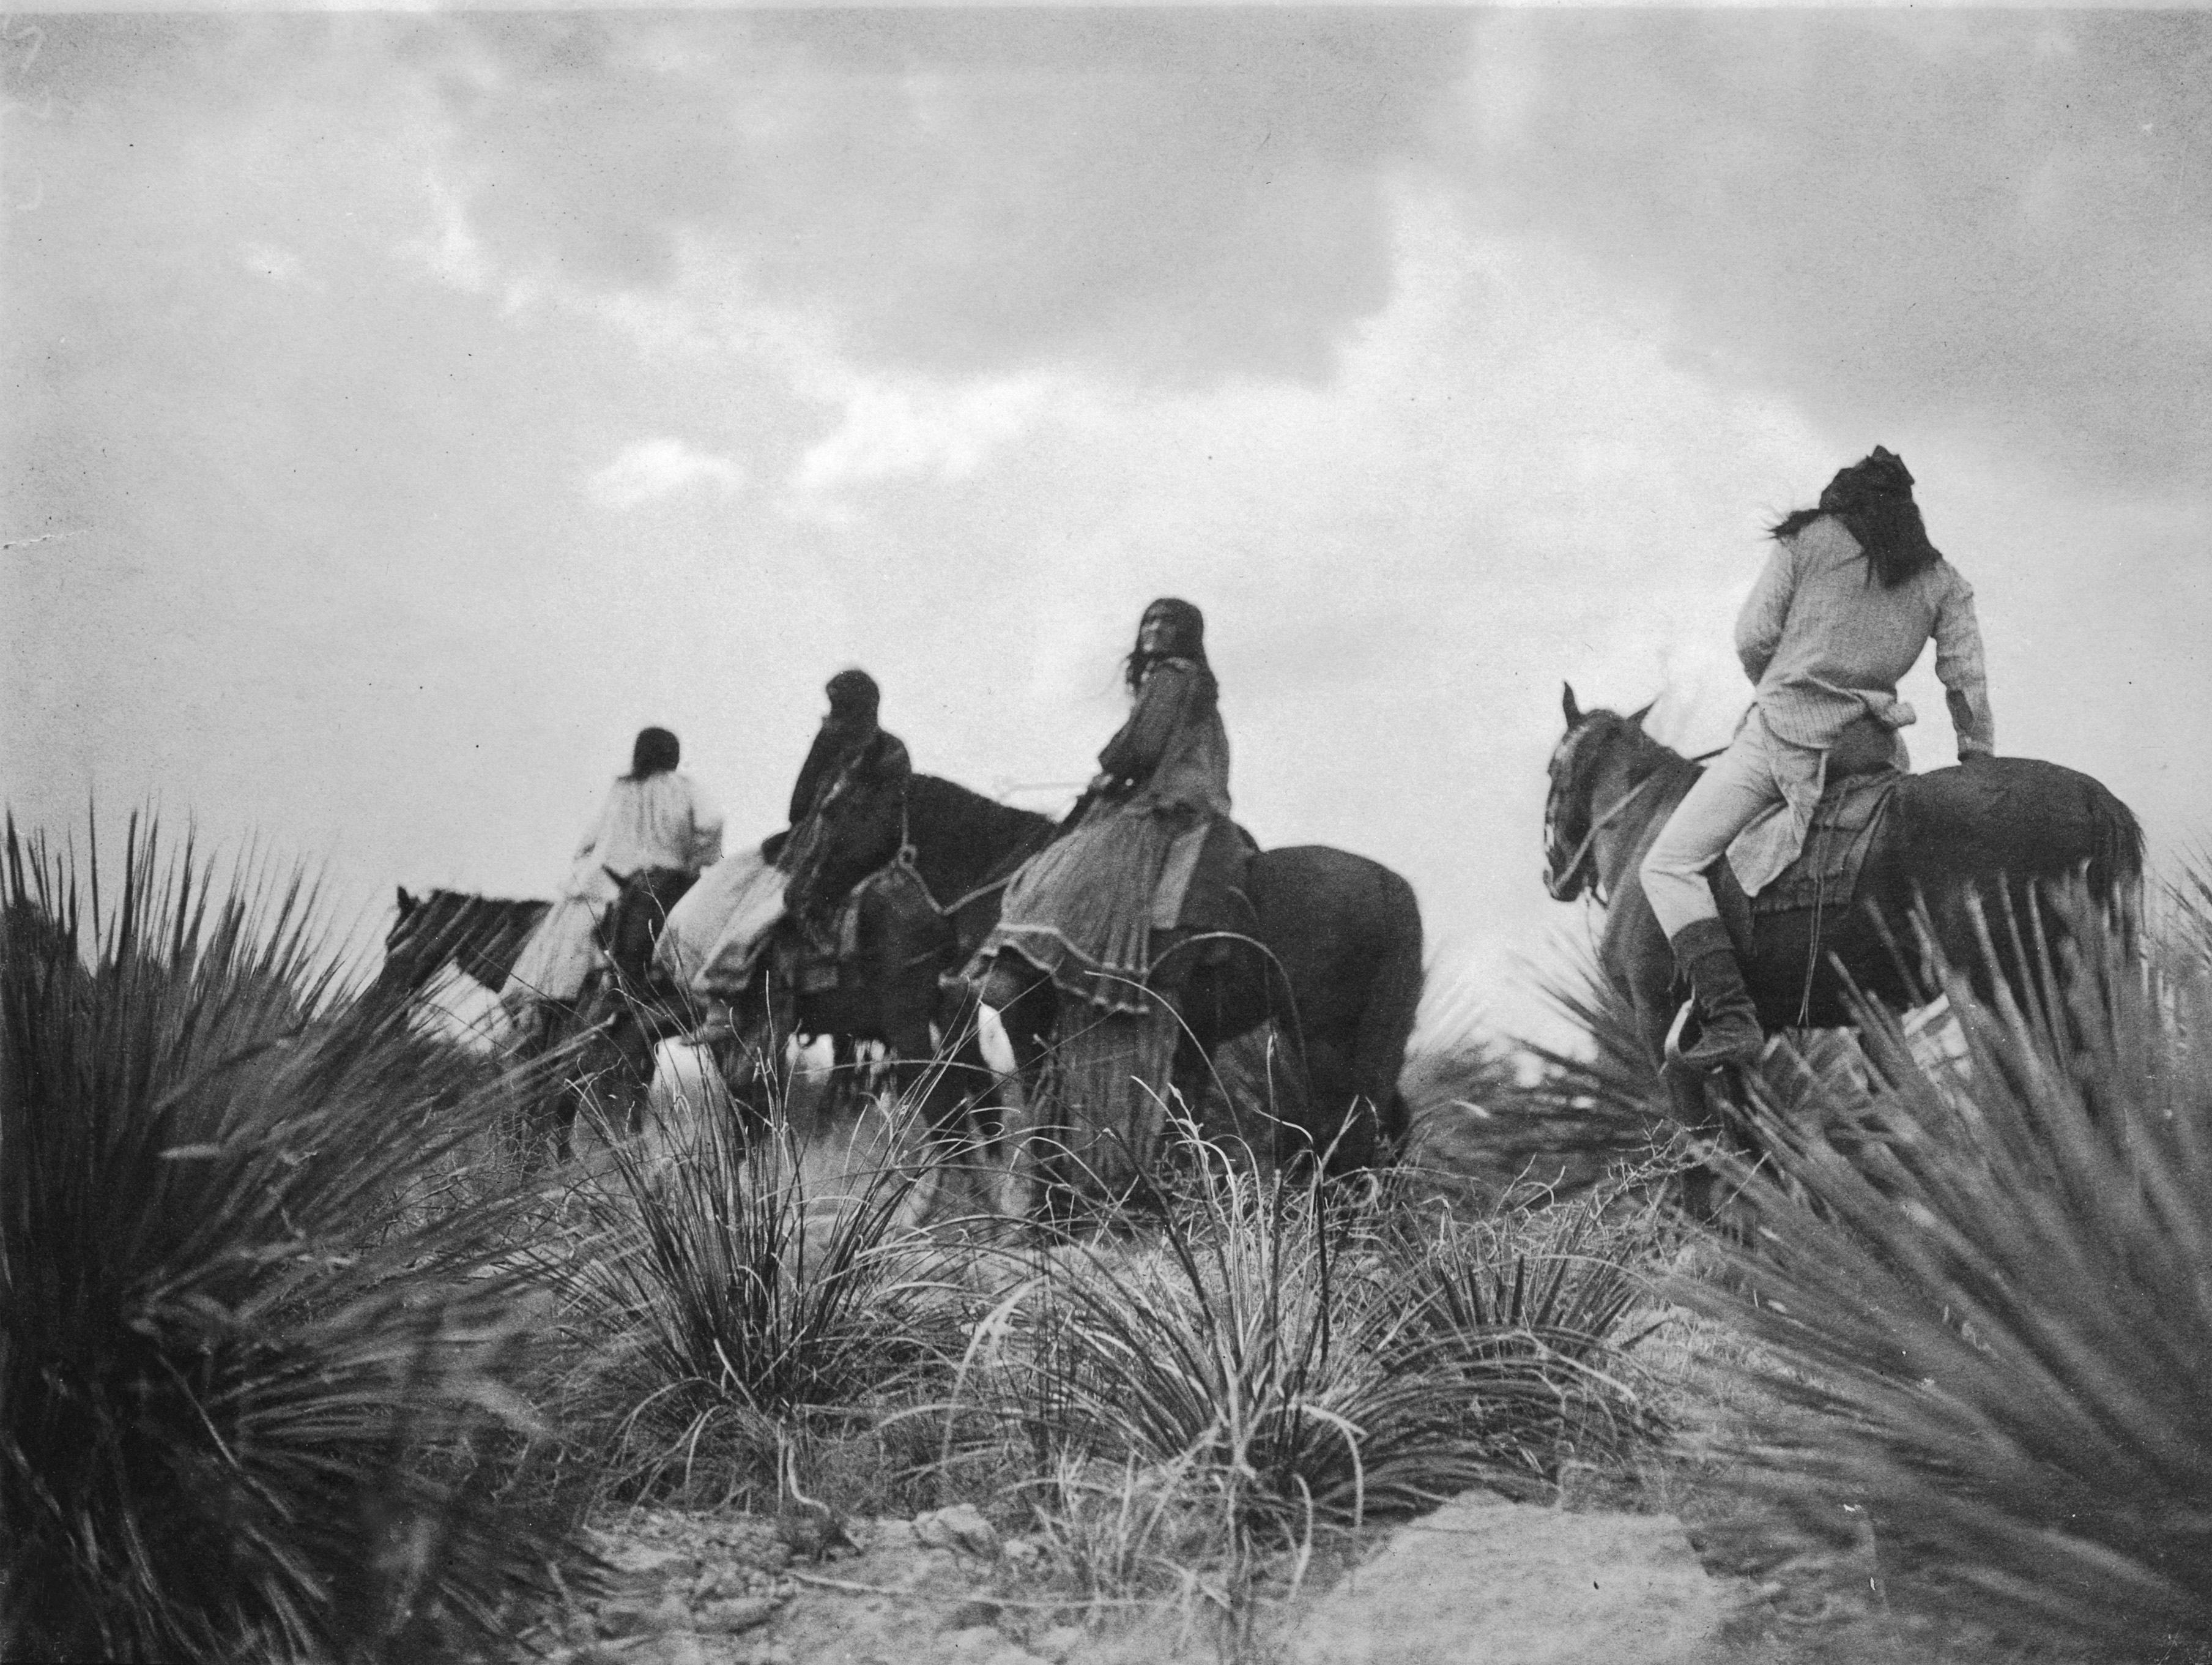 Before the Storm--Apache, 1906. In the arid high country of Arizona Territory, Curtis spent many months trying to capture Apache moments. Told the Apache had no religion, he was determined to prove otherwise.